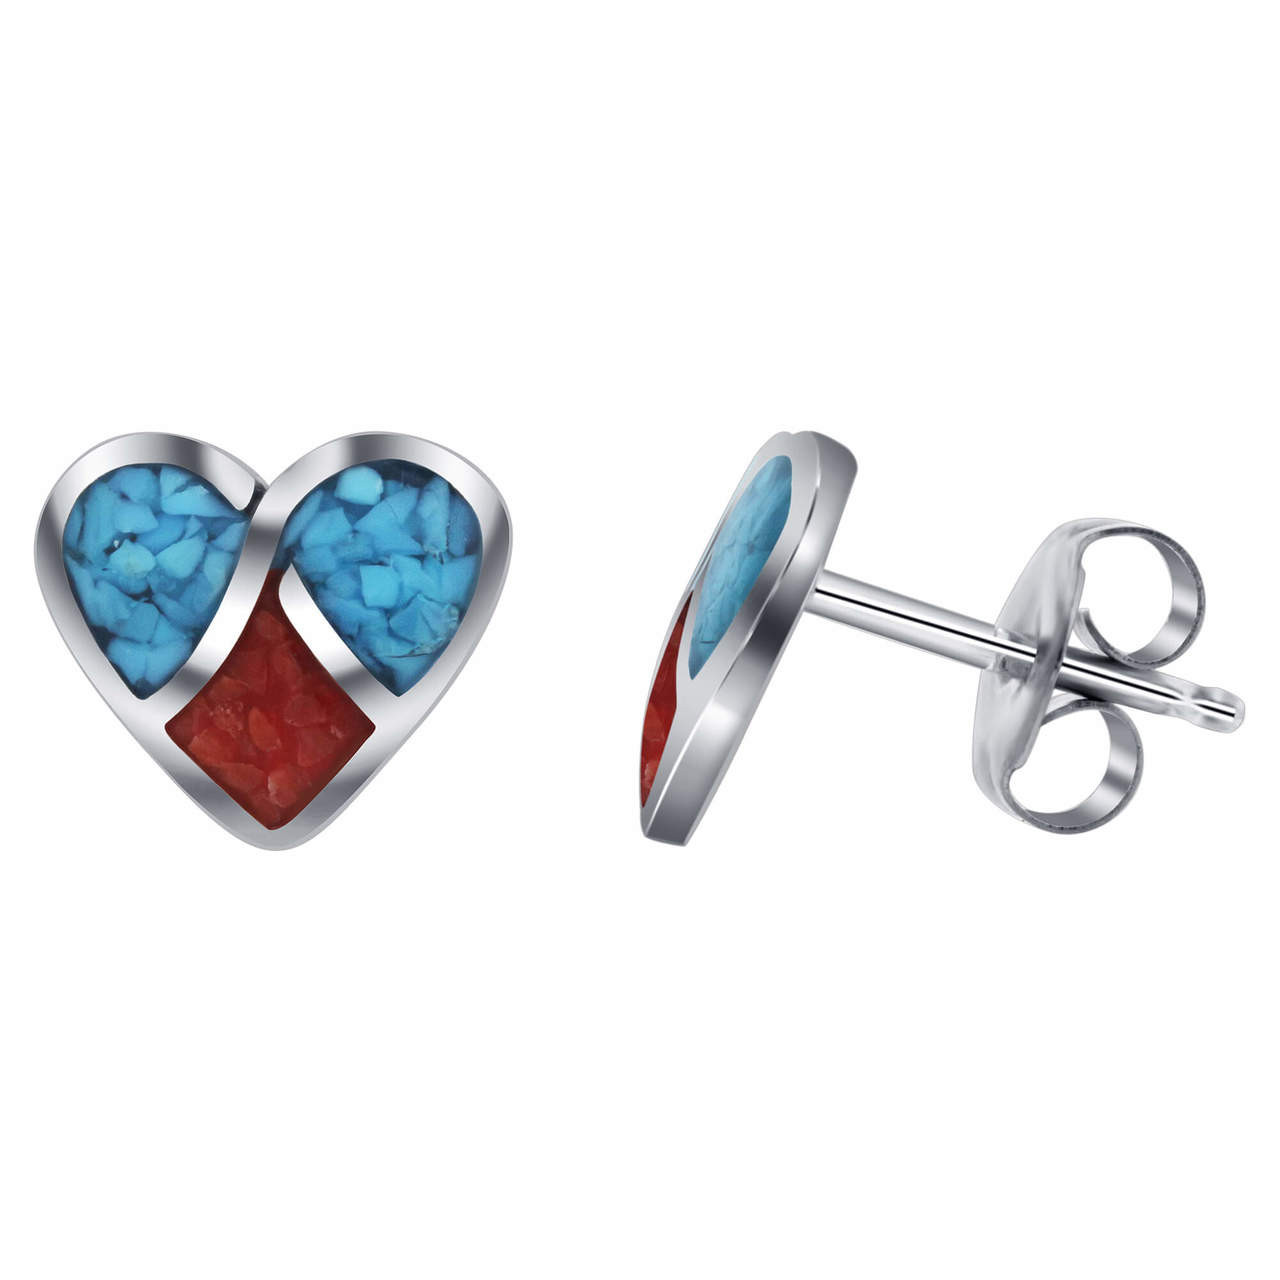 Turquoise and Coral Gemstone Heart Stud Earrings